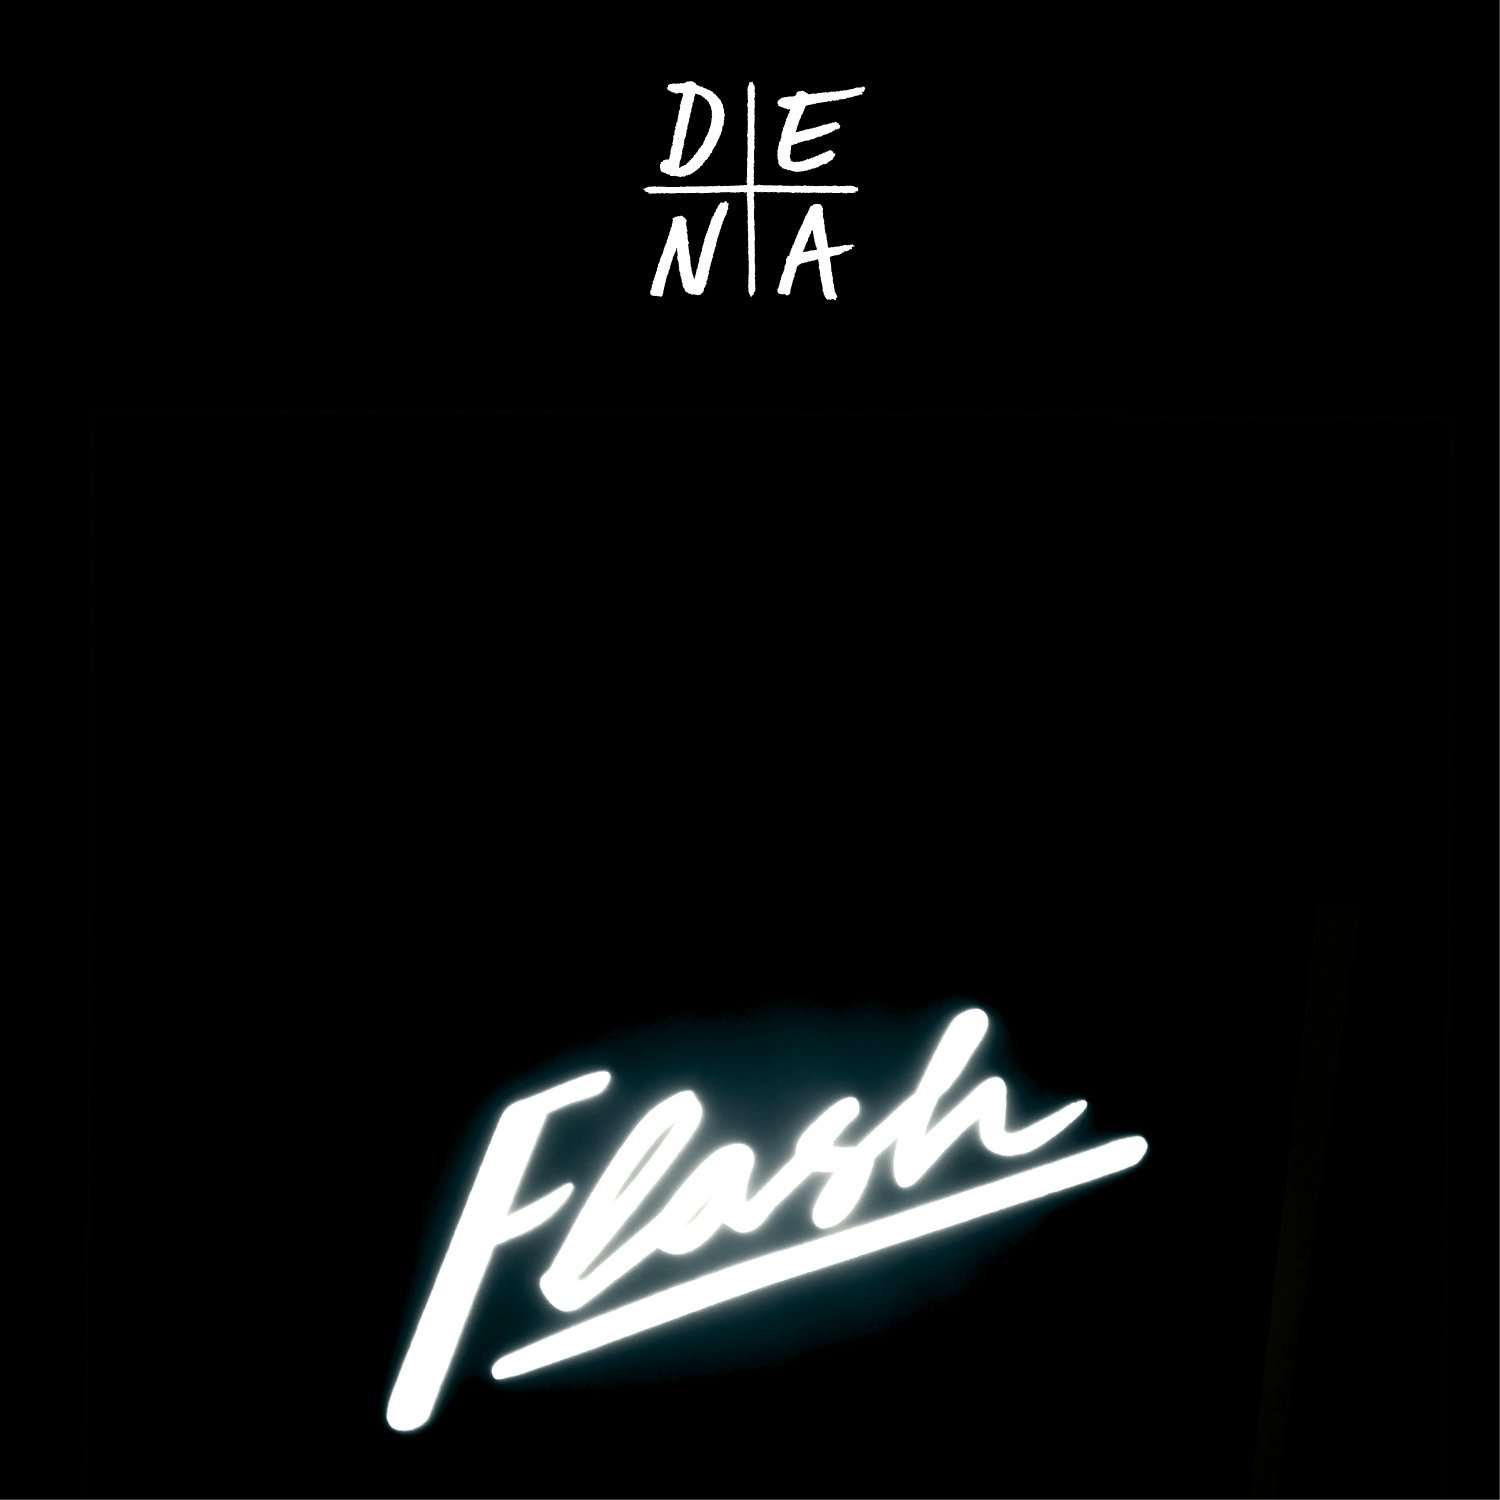 DENA FLASH